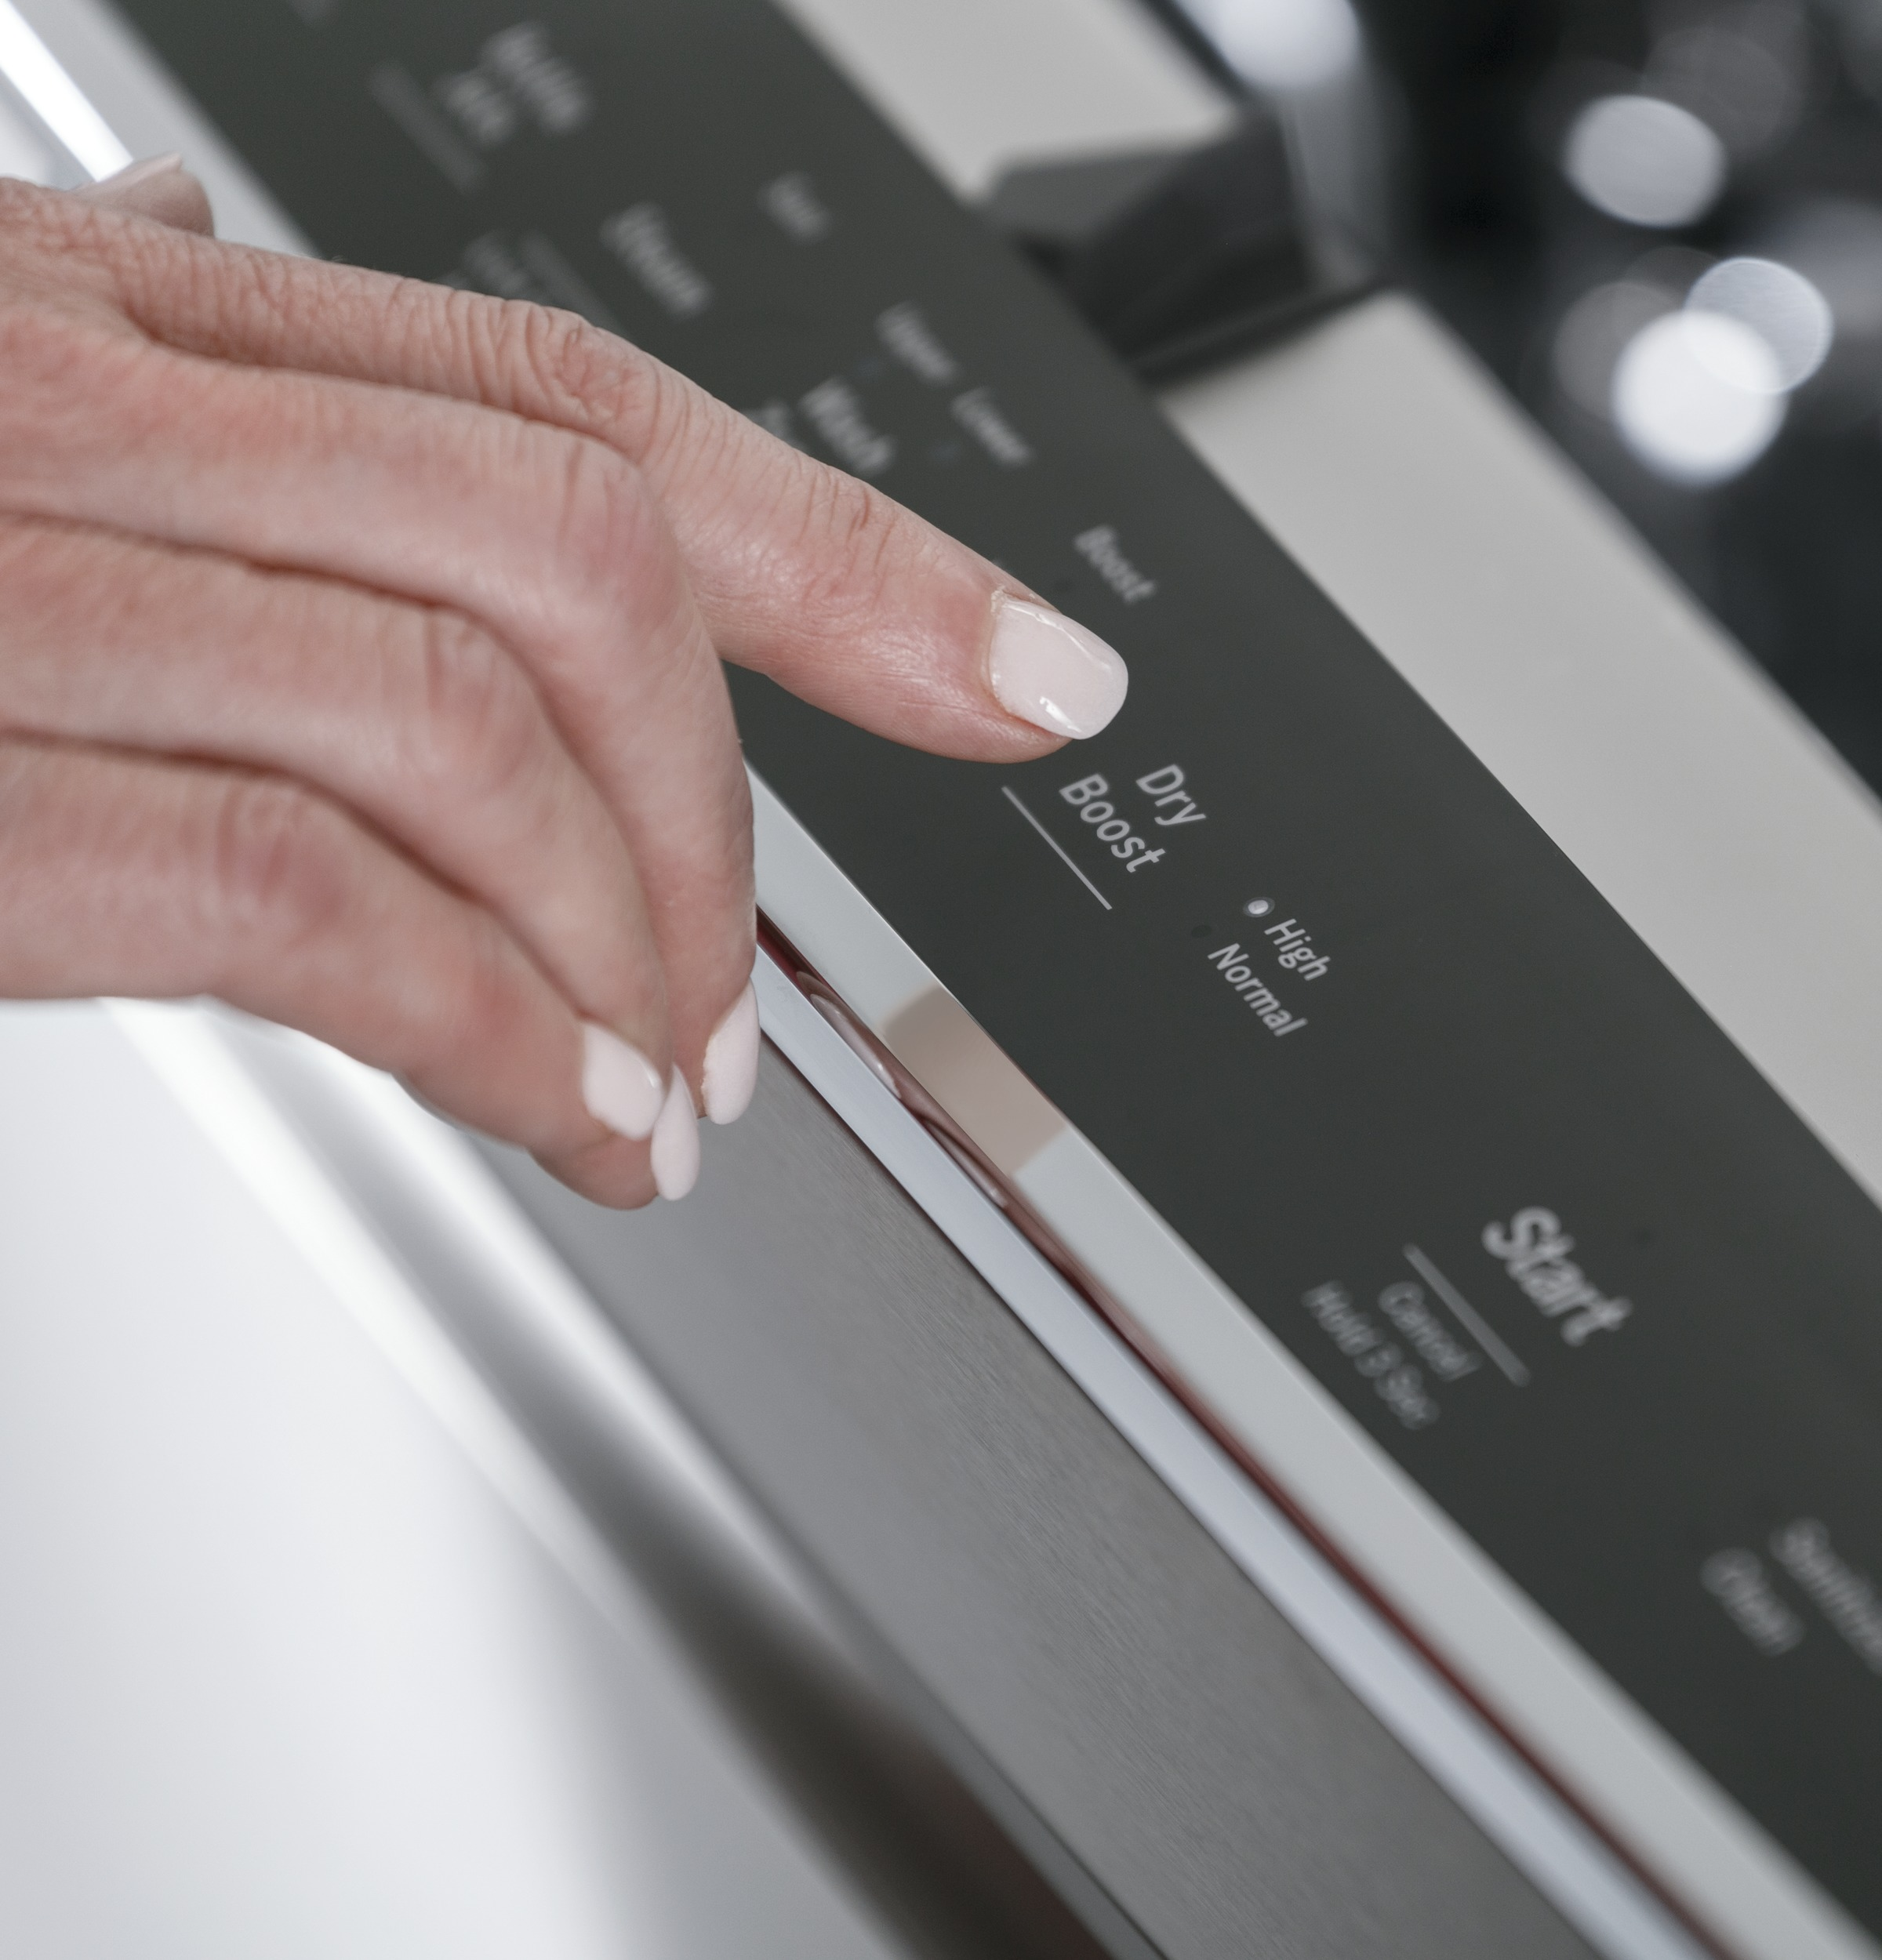 Model: PDT715SMNES   GE Profile GE Profile™ Stainless Steel Interior Dishwasher with Hidden Controls